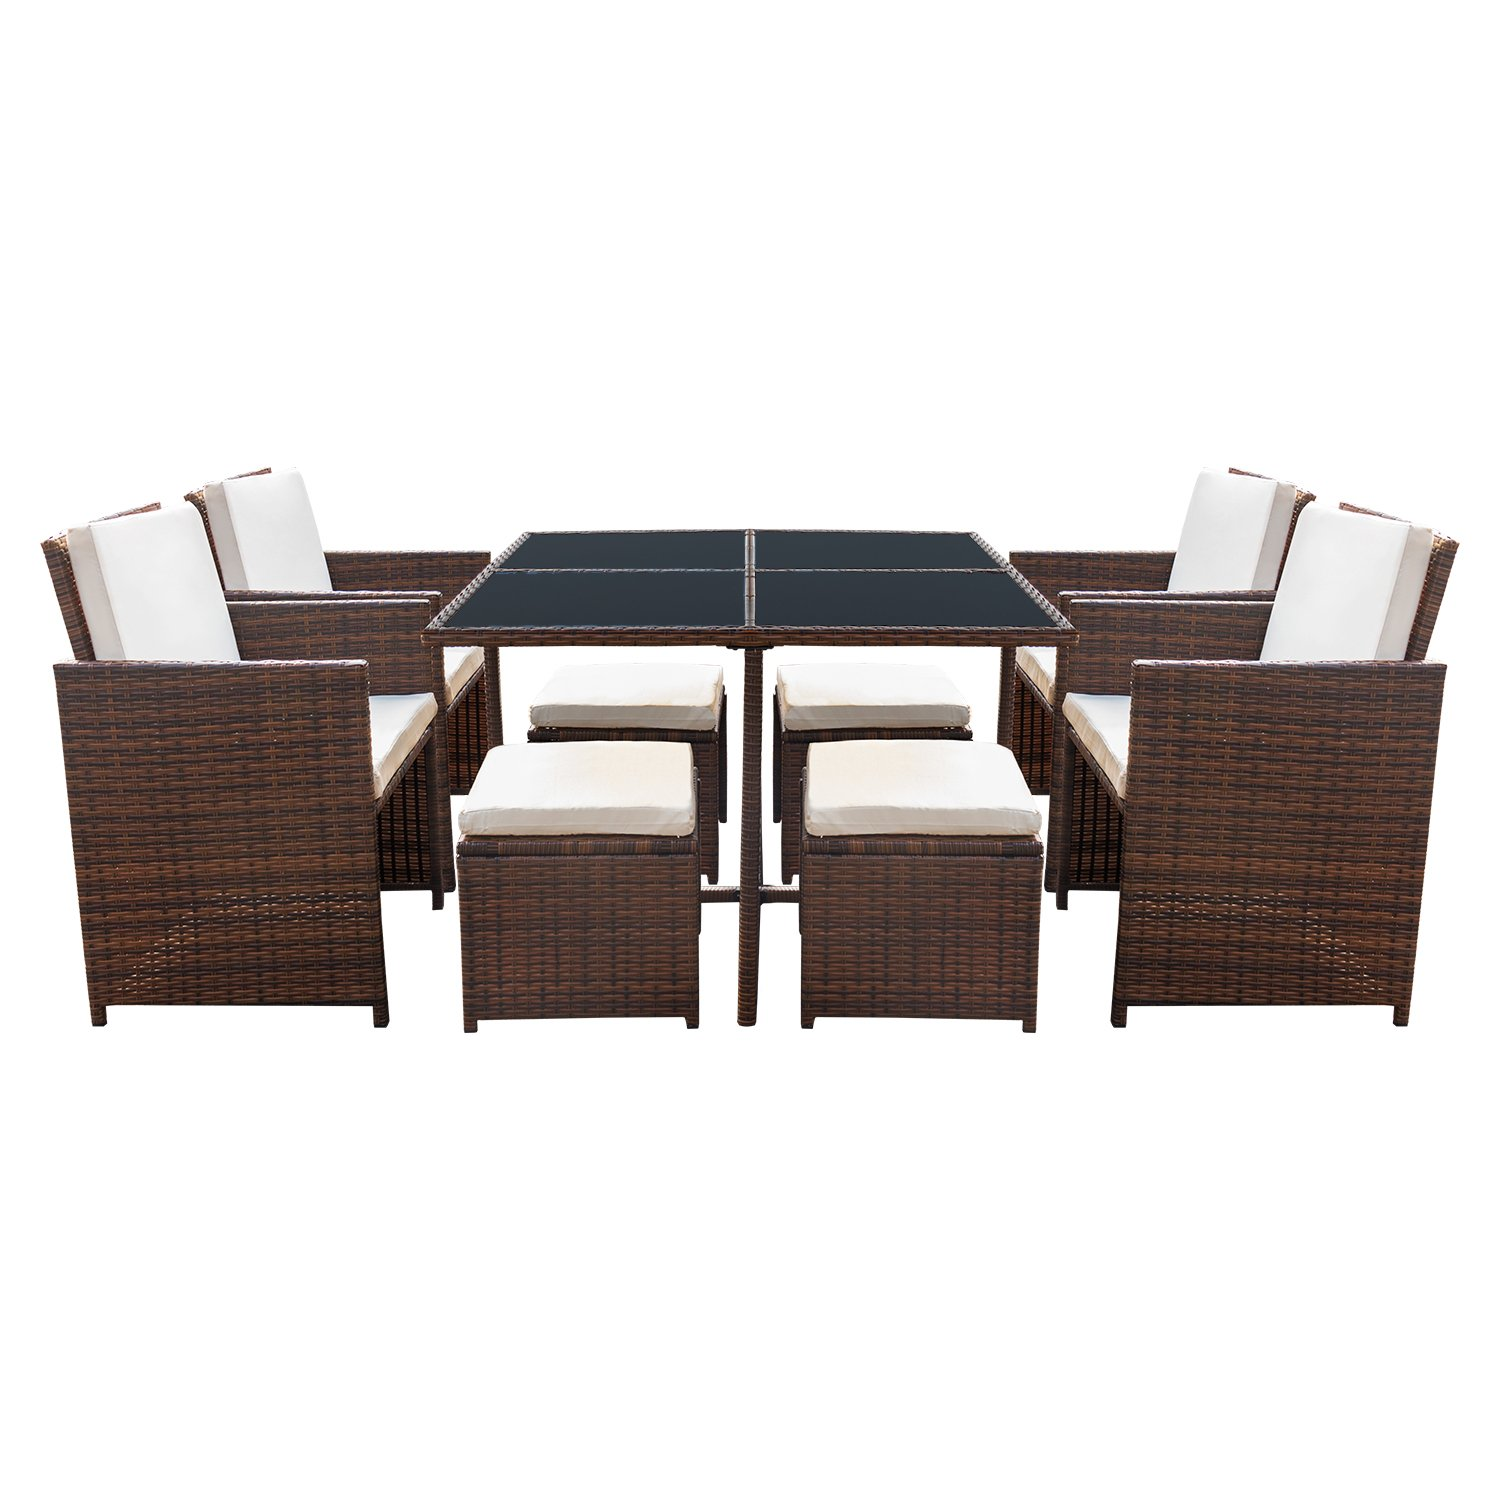 Devoko 9 Pieces Patio Dining Sets Outdoor Space Saving Rattan Chairs with Glass Table Patio Furniture Sets Cushioned Seating and Back Sectional Conversation Set (Brown) by Devoko (Image #6)